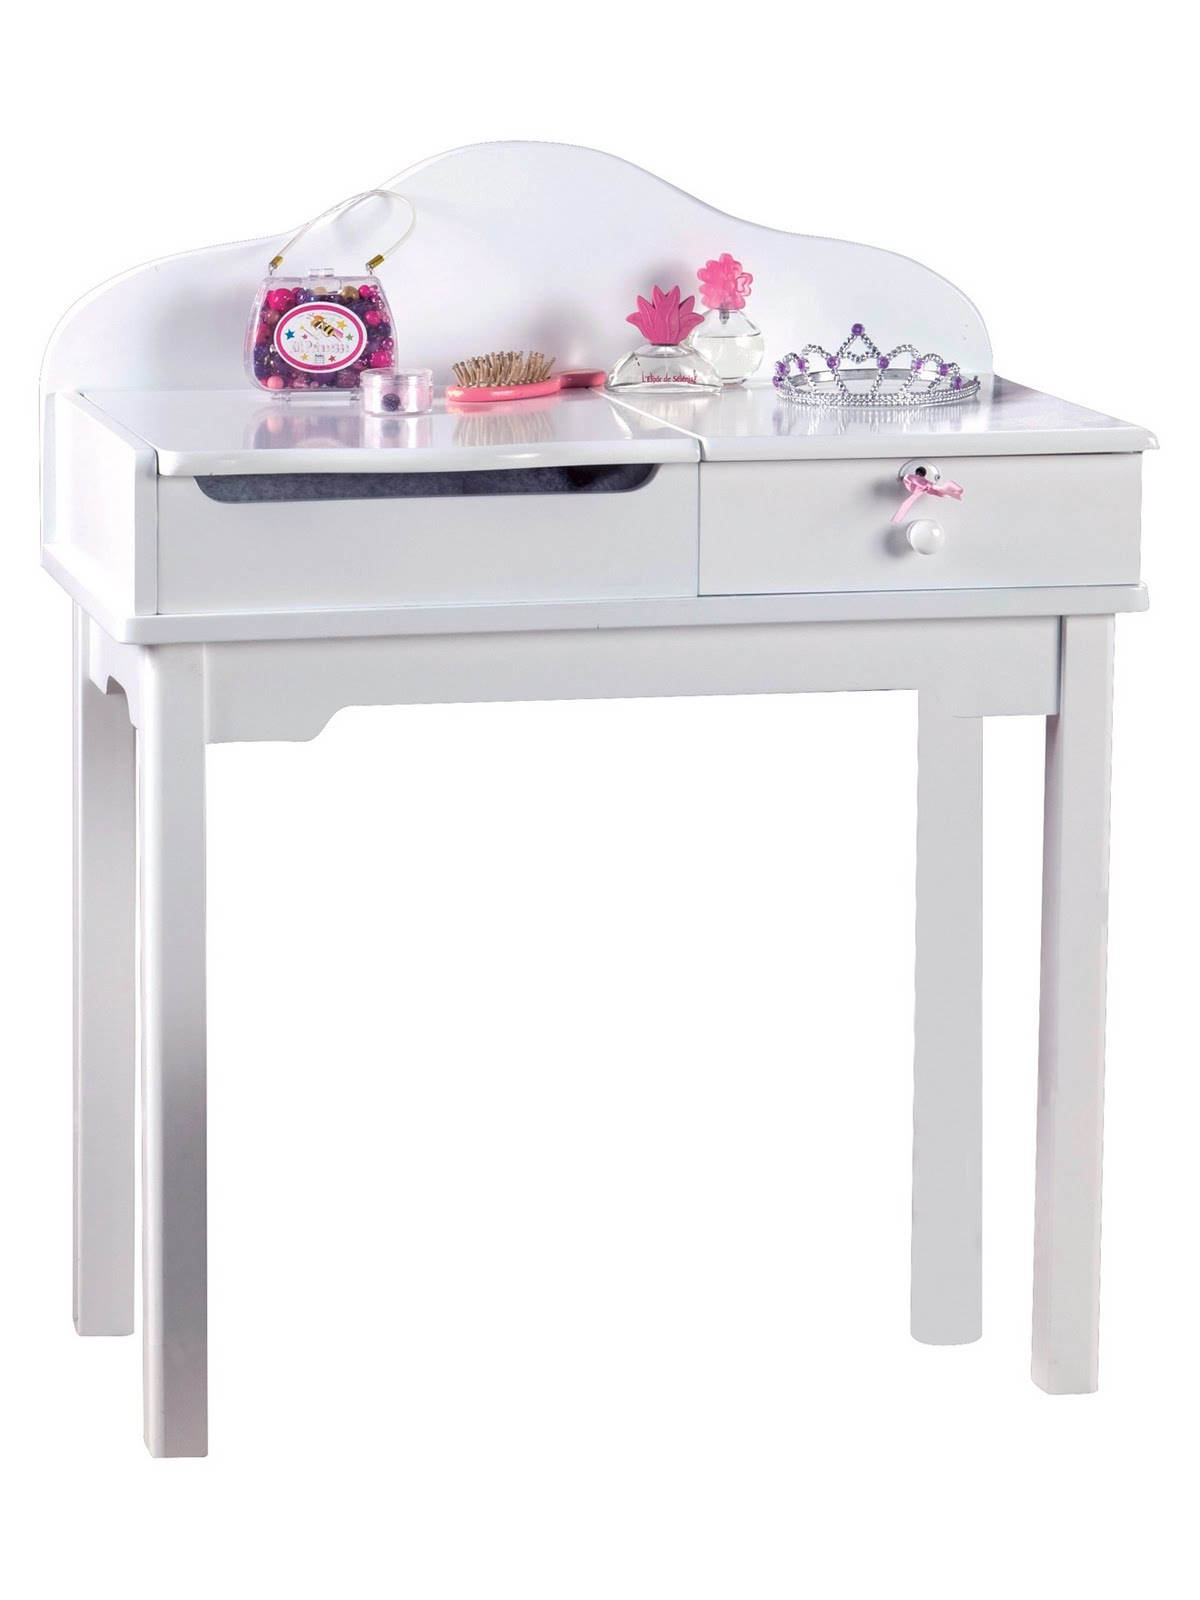 bureau fille vertbaudet bureau enfant fille ans verbaudet occasion with bureau fille vertbaudet. Black Bedroom Furniture Sets. Home Design Ideas